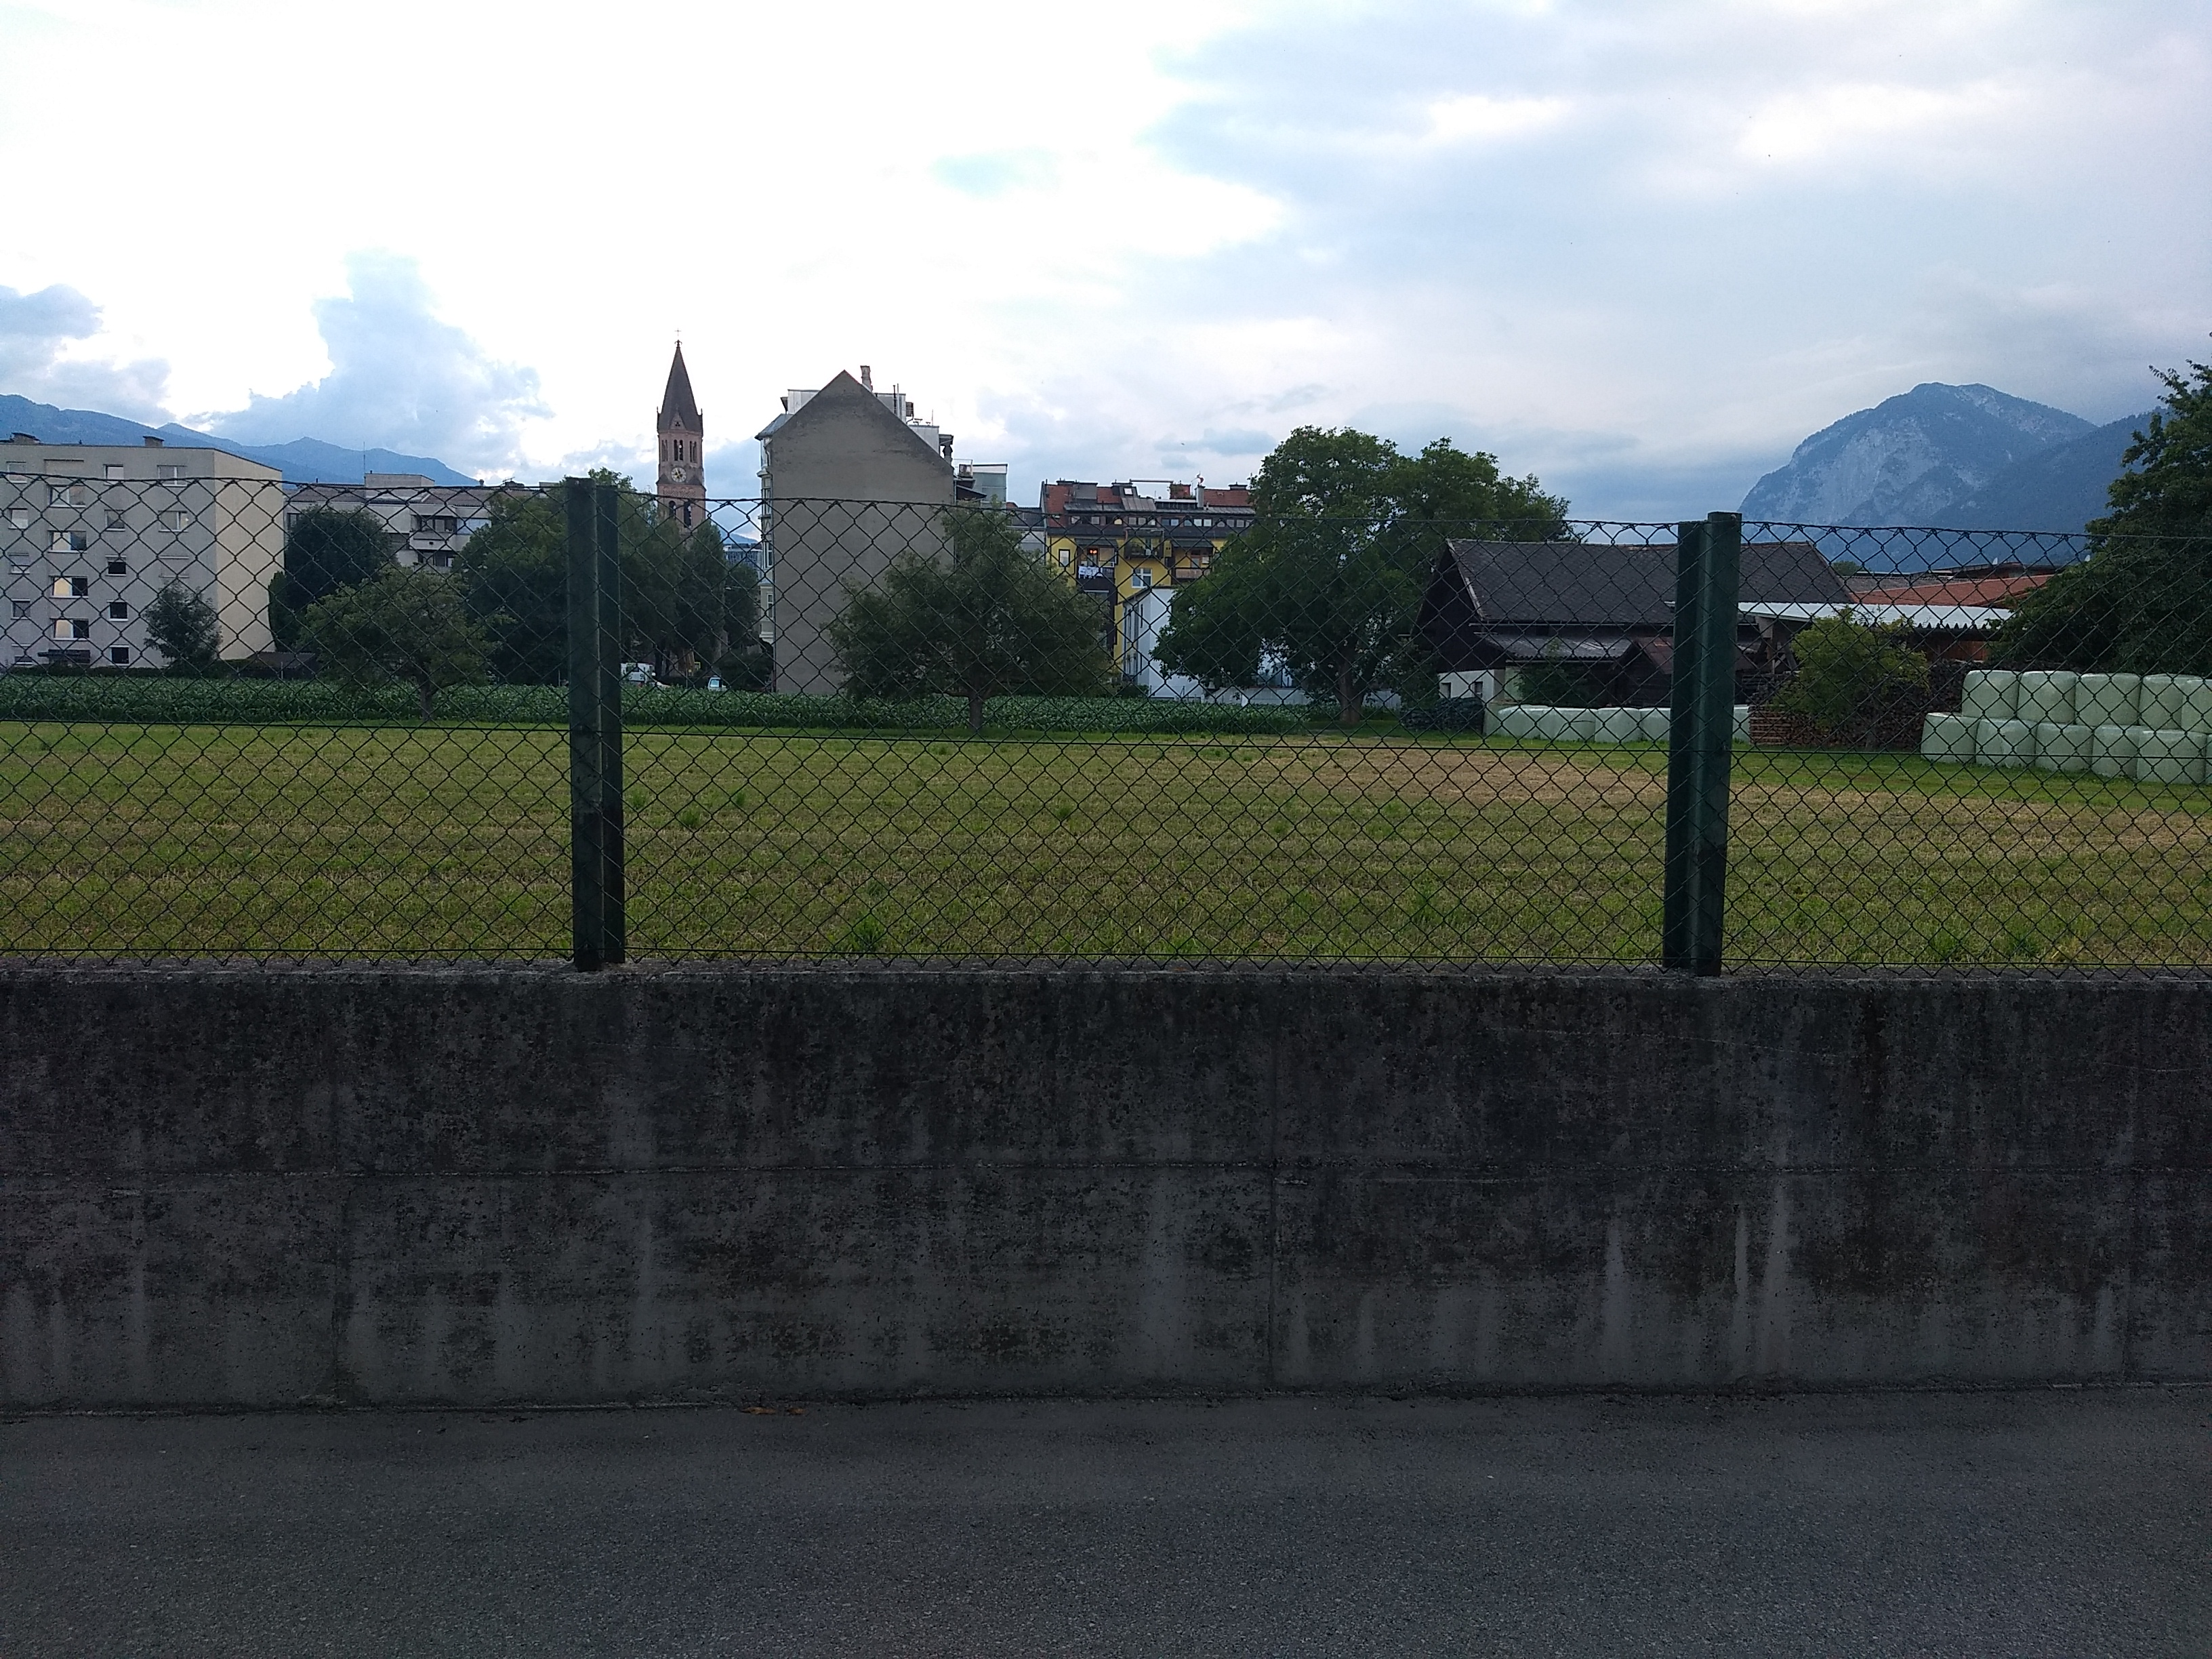 a photo of a farm with concrete and chain link fence in a European city centre